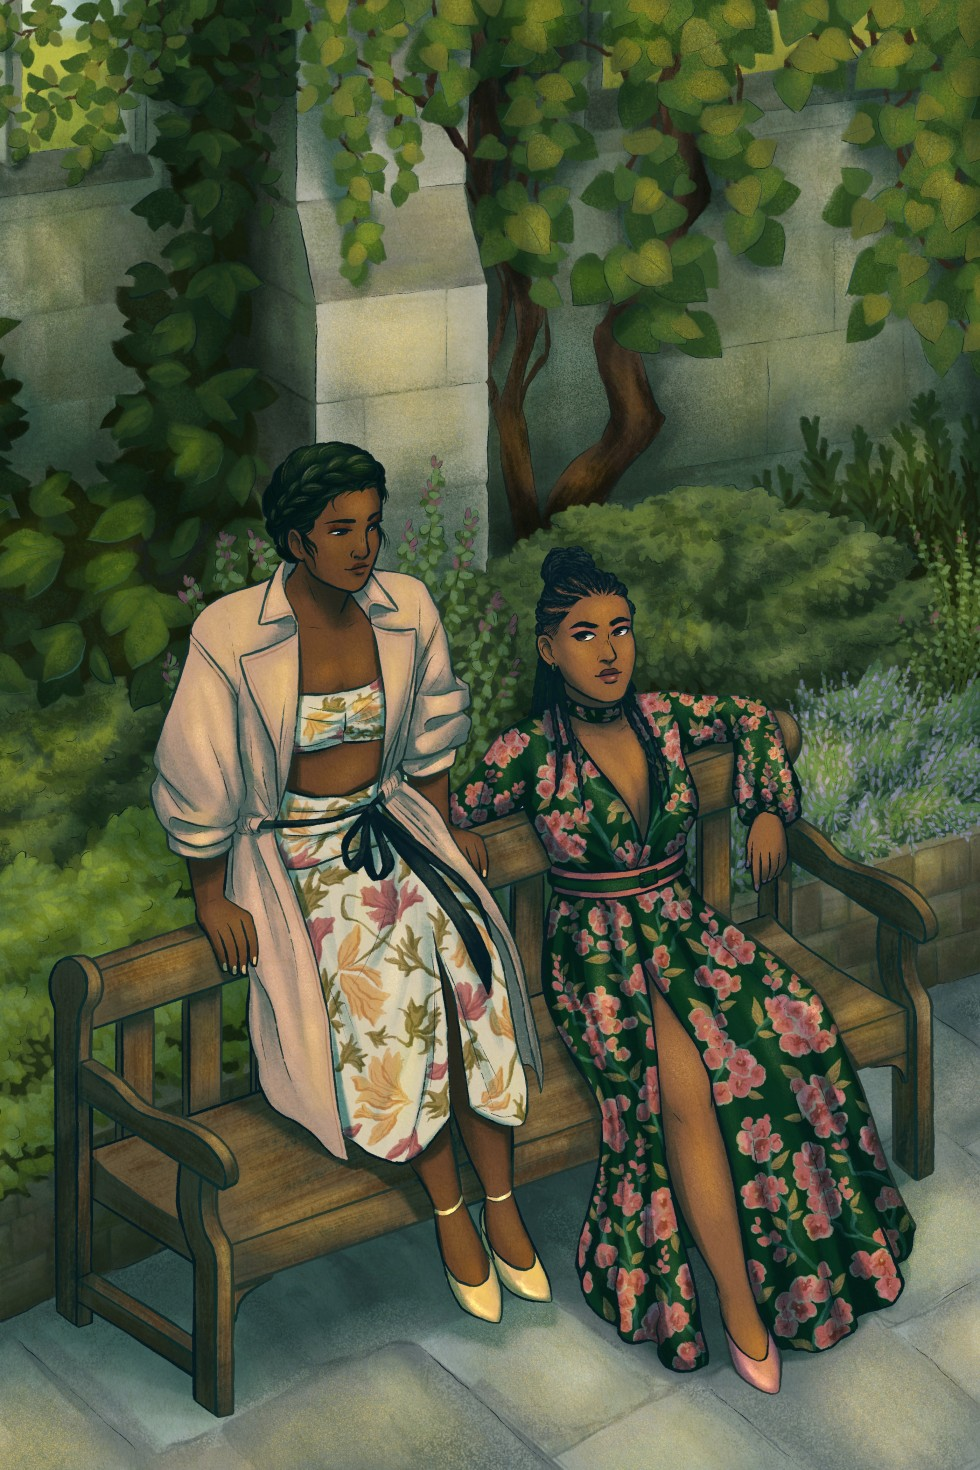 A digital art piece that features two figures glancing at each other and sitting on a park bench in the sun. The figure on the left is sitting on the back of the bench. She has dark skin and dark hair done in a braid crown, and she is wearing a cream colo